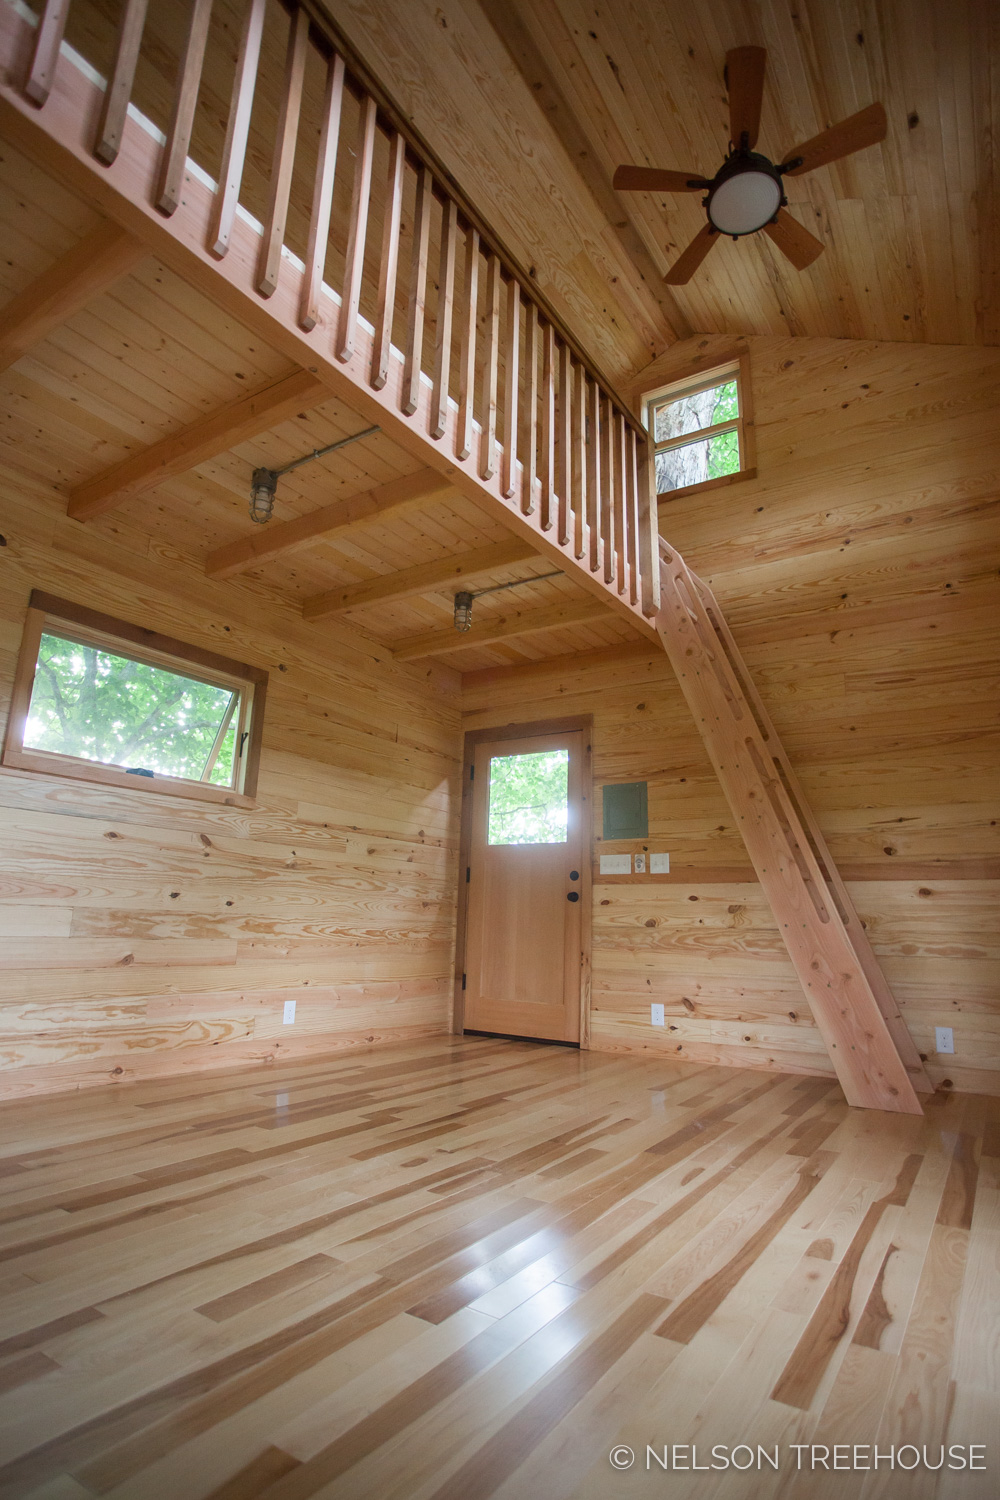 TenNessee Riverbank Treehouse Interior